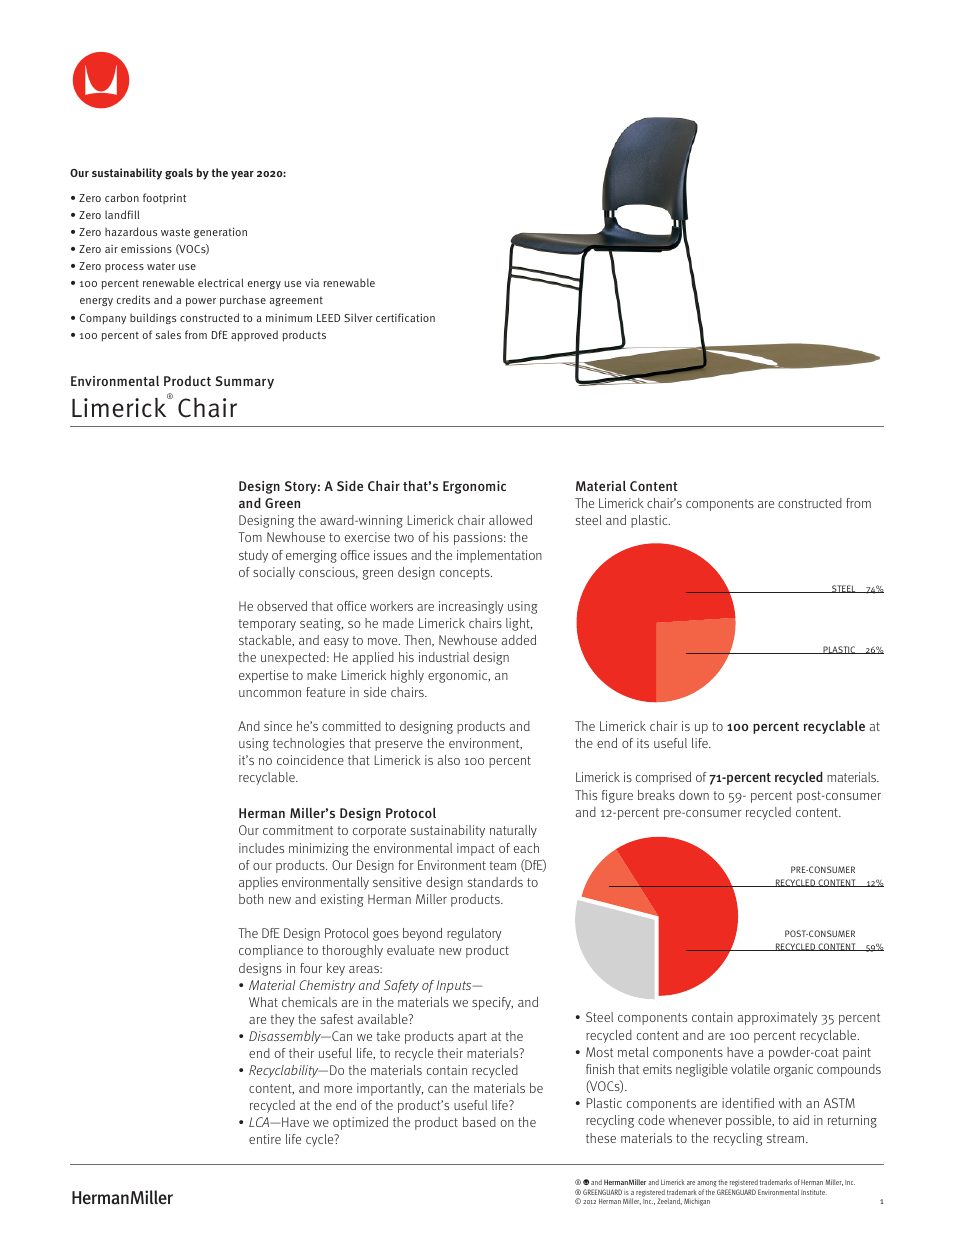 Herman Miller Limerick Chairs - Environmental Product Summary User ...